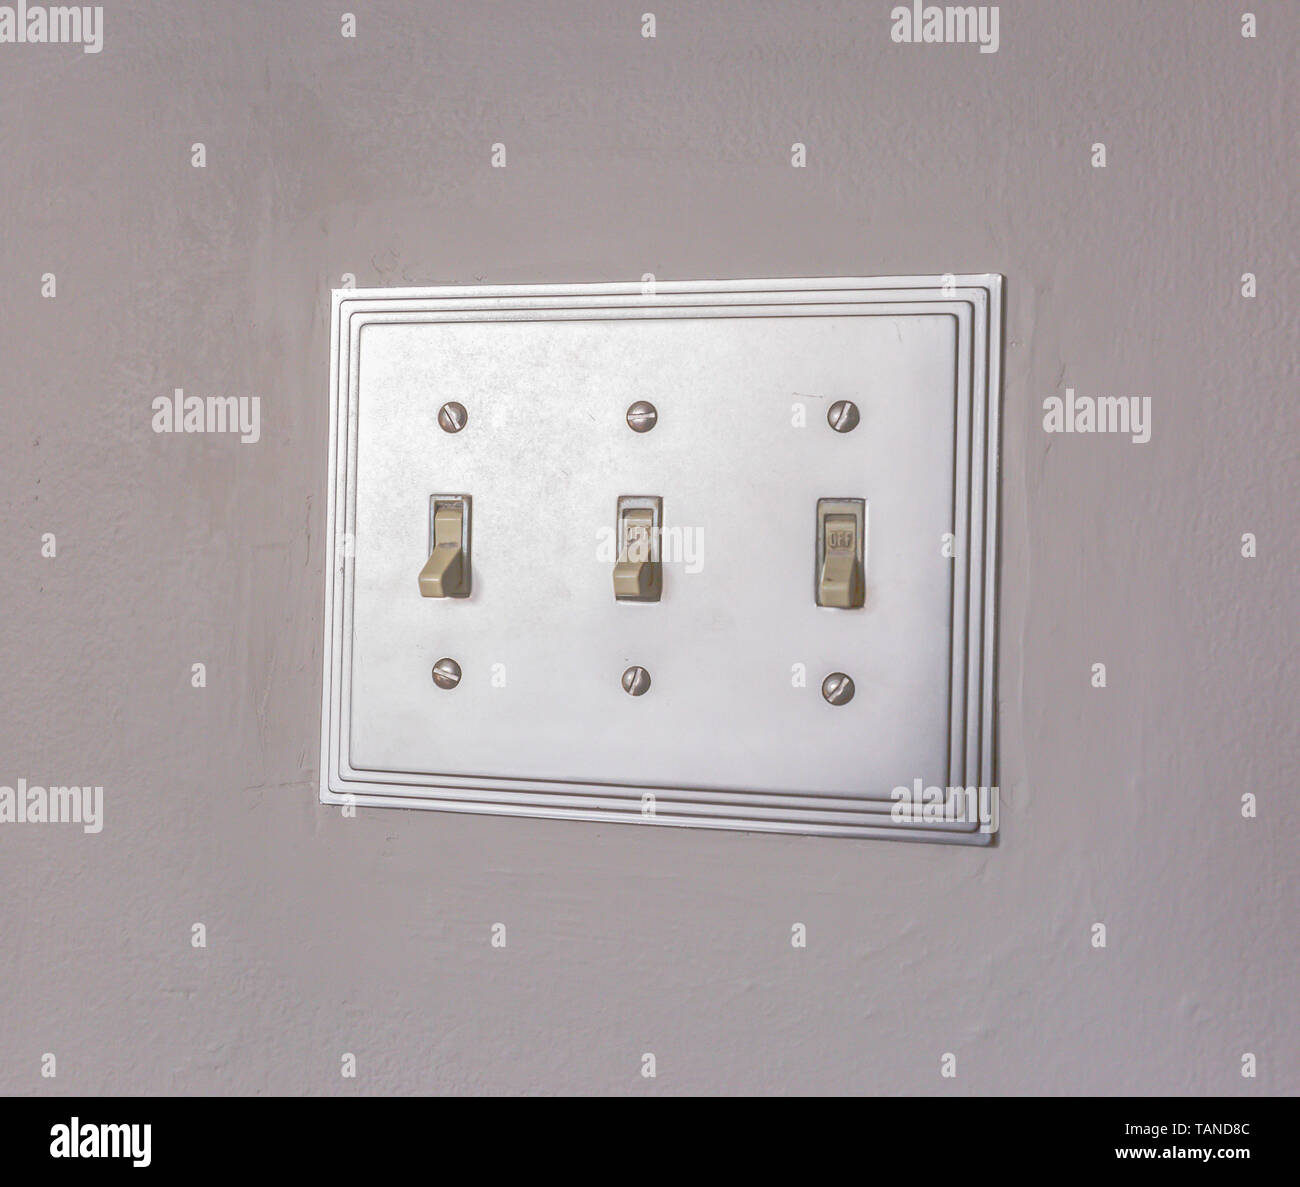 Close up of the electrical light switch against the white wall of a house. The vertical flip toggle light switches is in off mode. - Stock Image